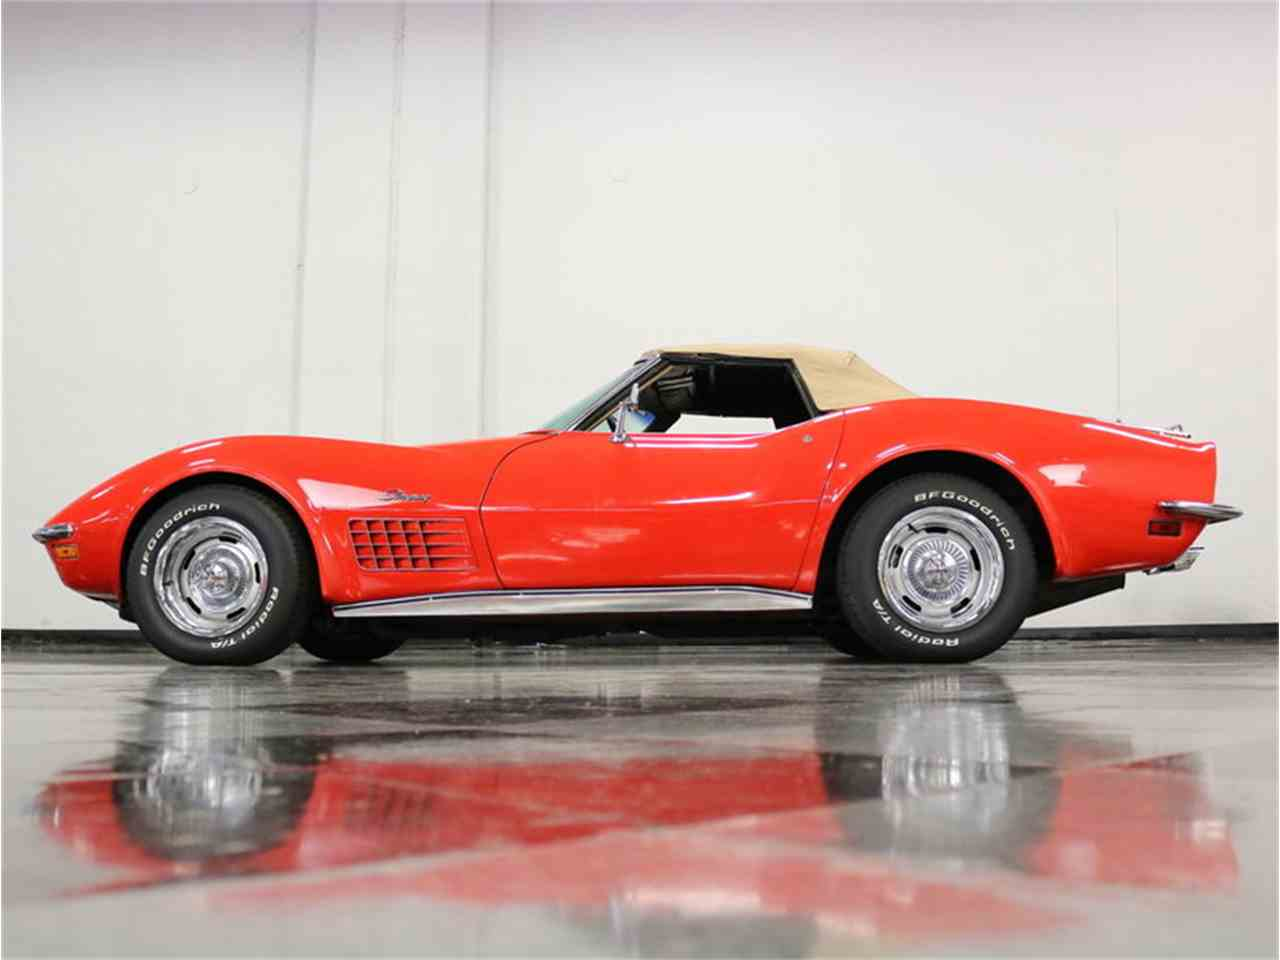 Large Picture of Classic 1971 Chevrolet Corvette located in Texas - $37,995.00 Offered by Streetside Classics - Dallas / Fort Worth - MCB2